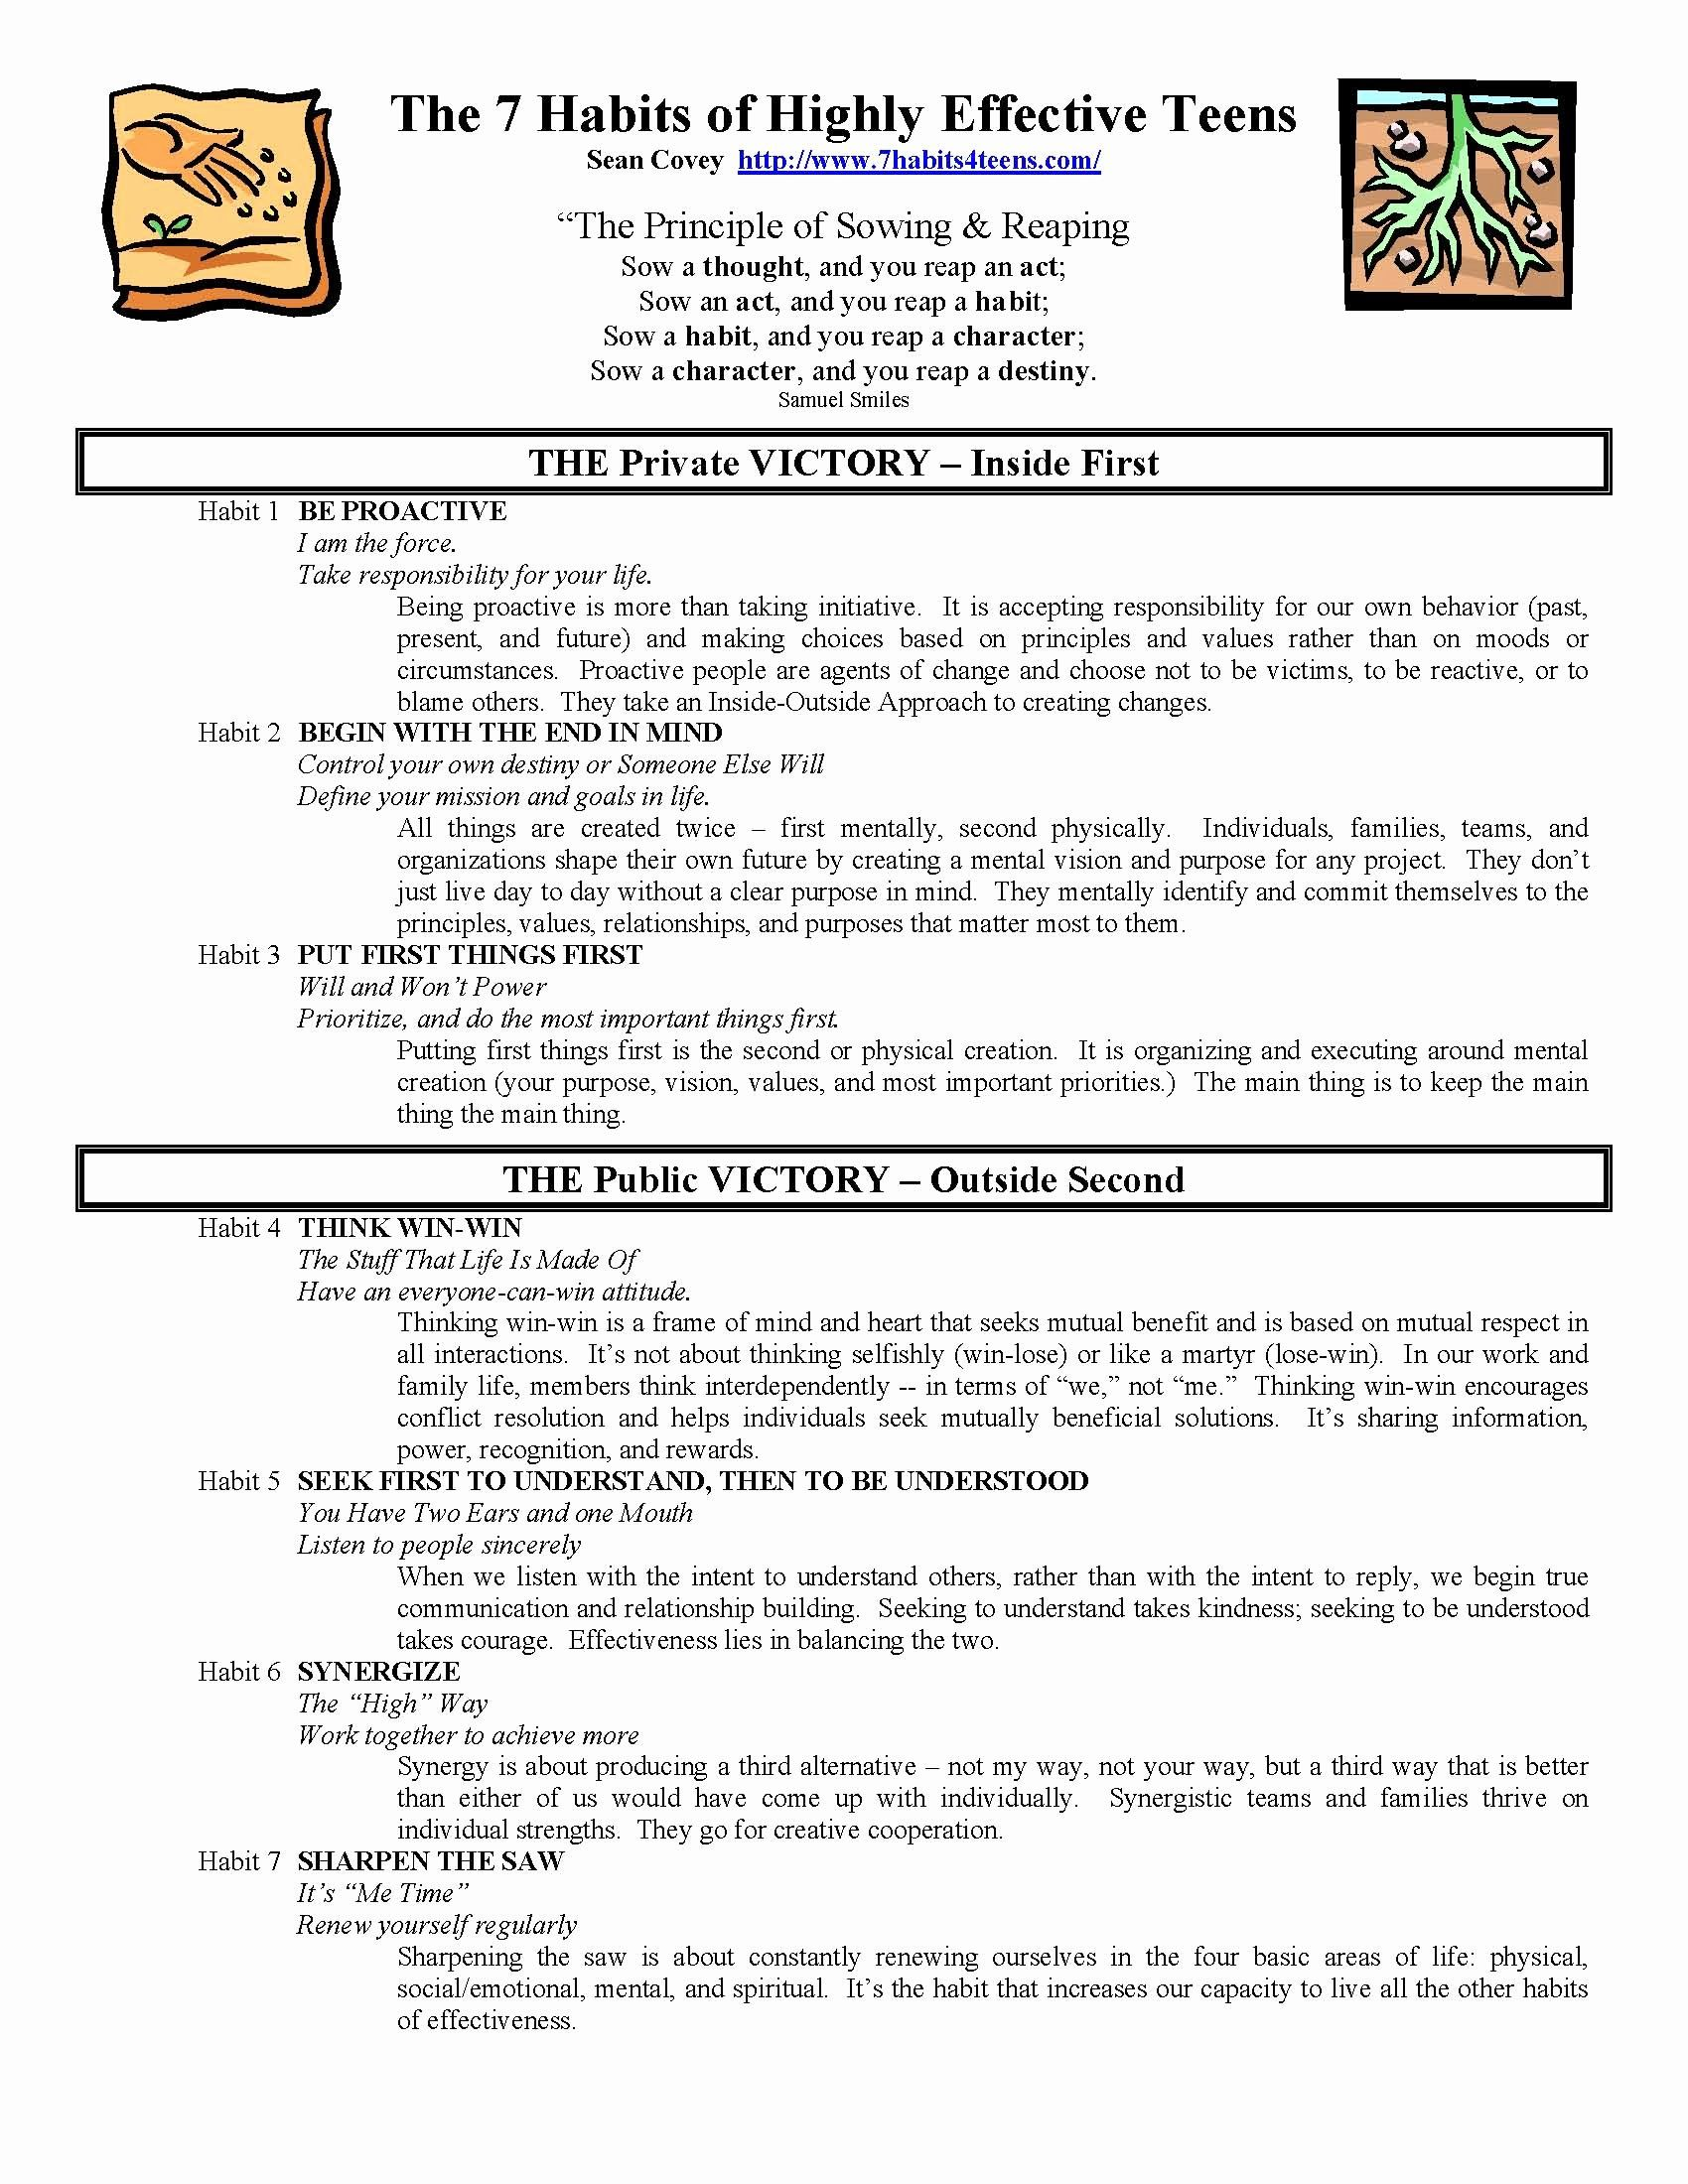 small resolution of 7 Habits Worksheet Pdf Luxury 7 Habits Highly Effective Teens Worksheets  the Best   School organization for teens